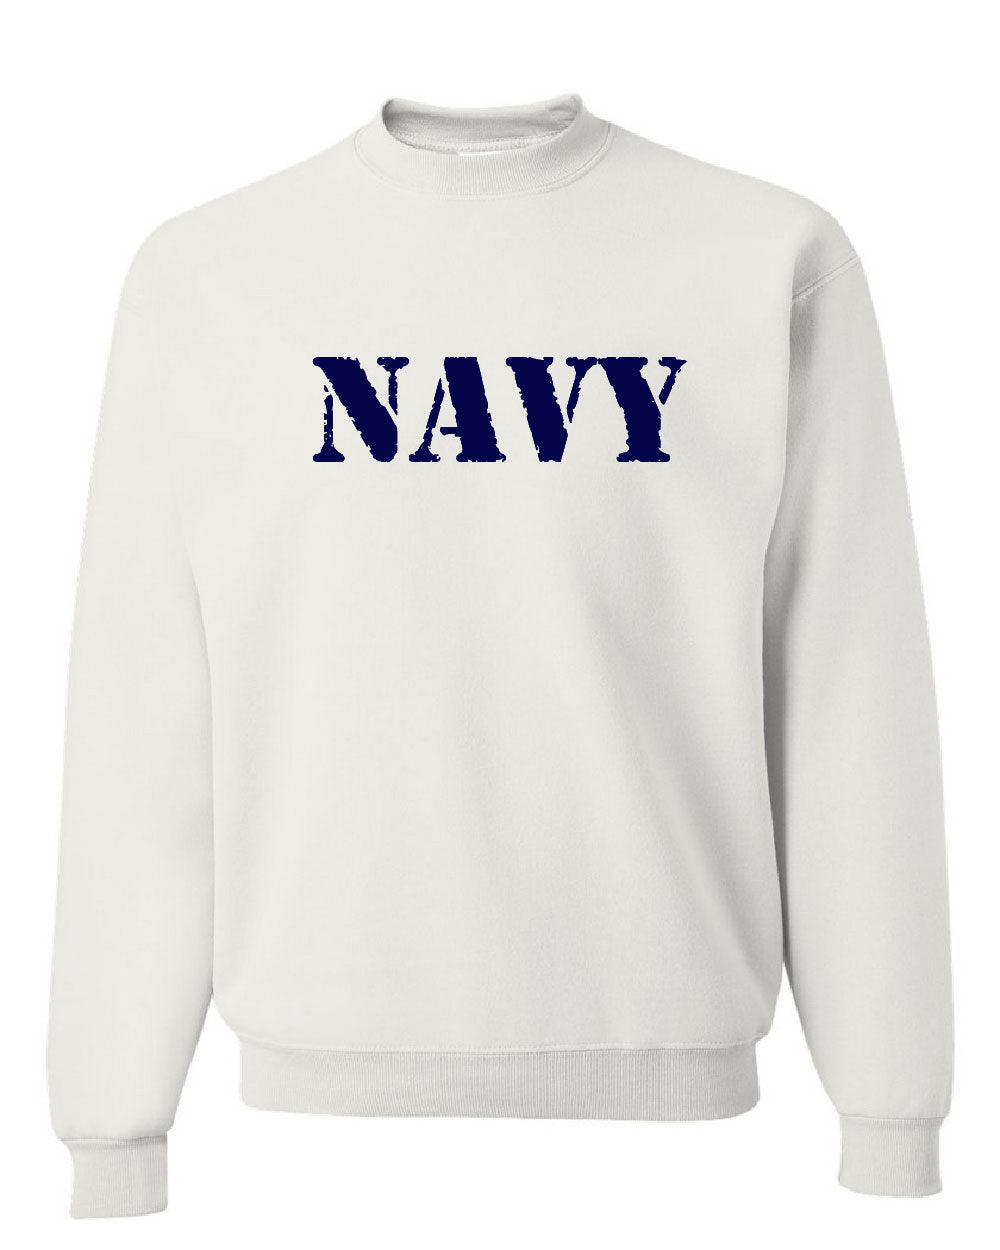 Us Navy Seals Sweatshirts